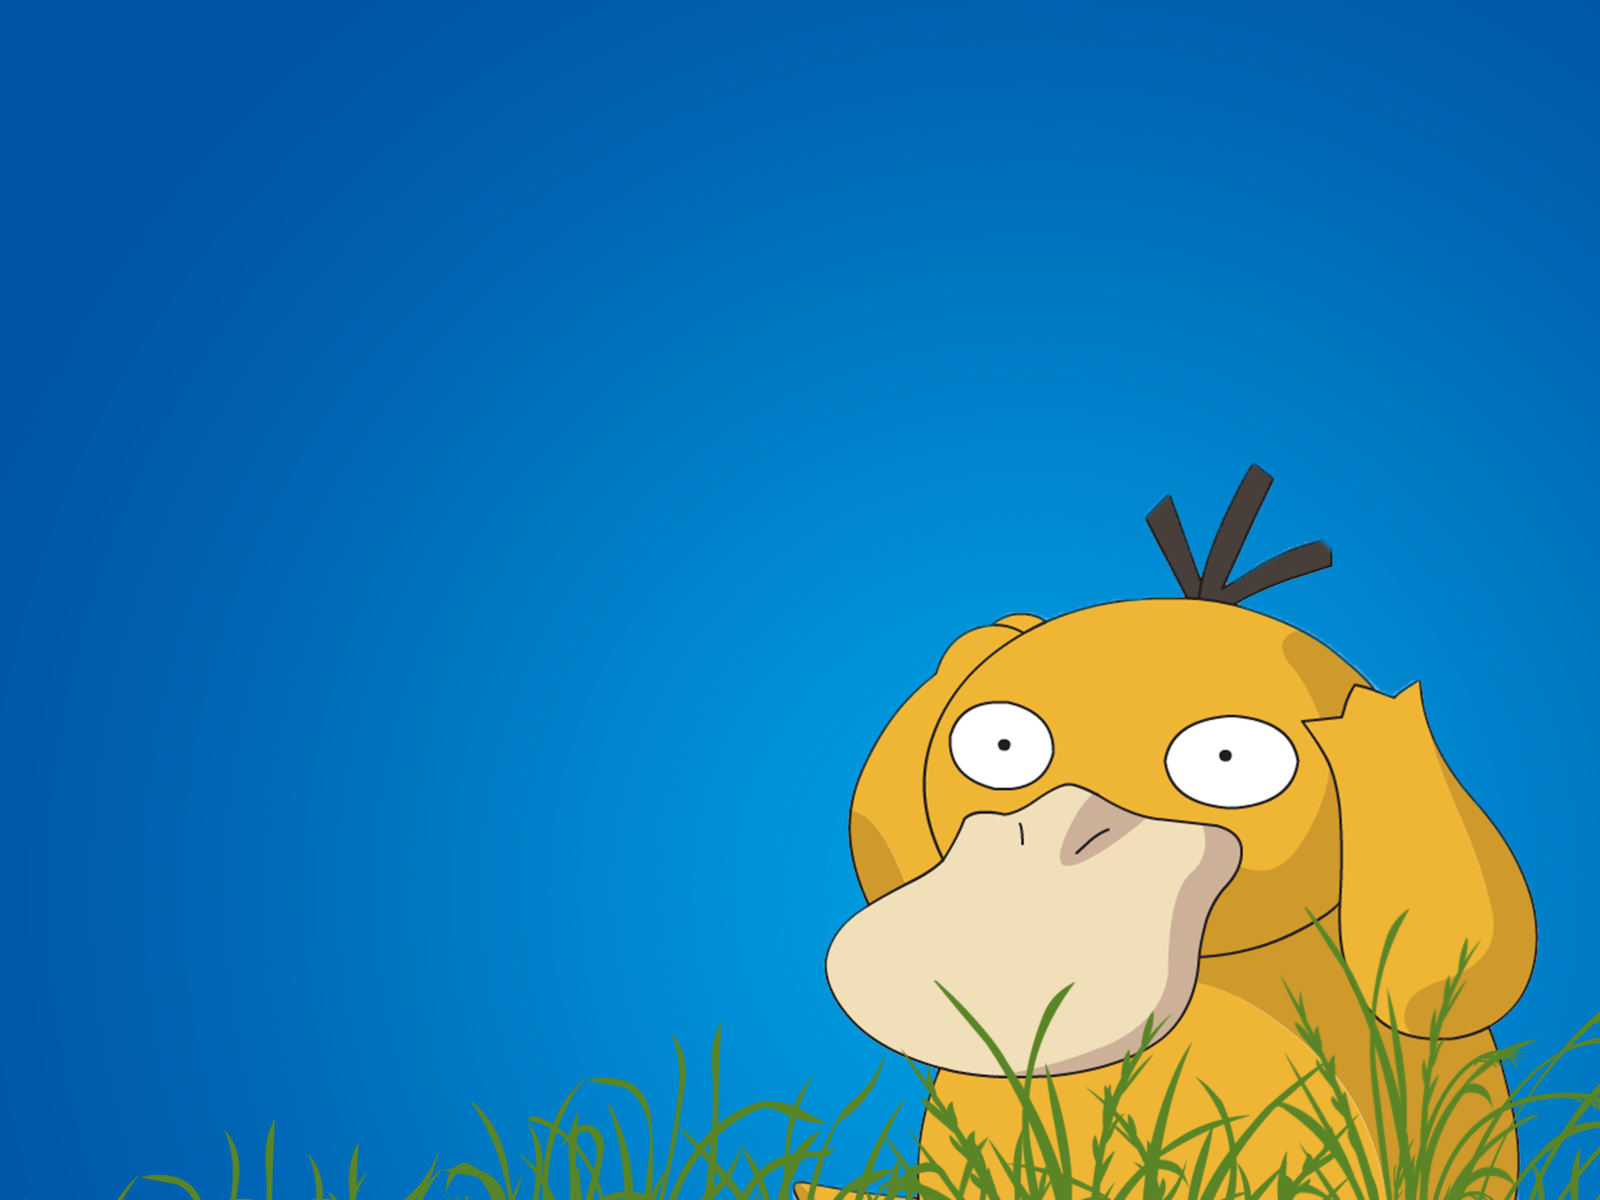 pokemon psyduck wallpaper 1920x1080 - photo #15